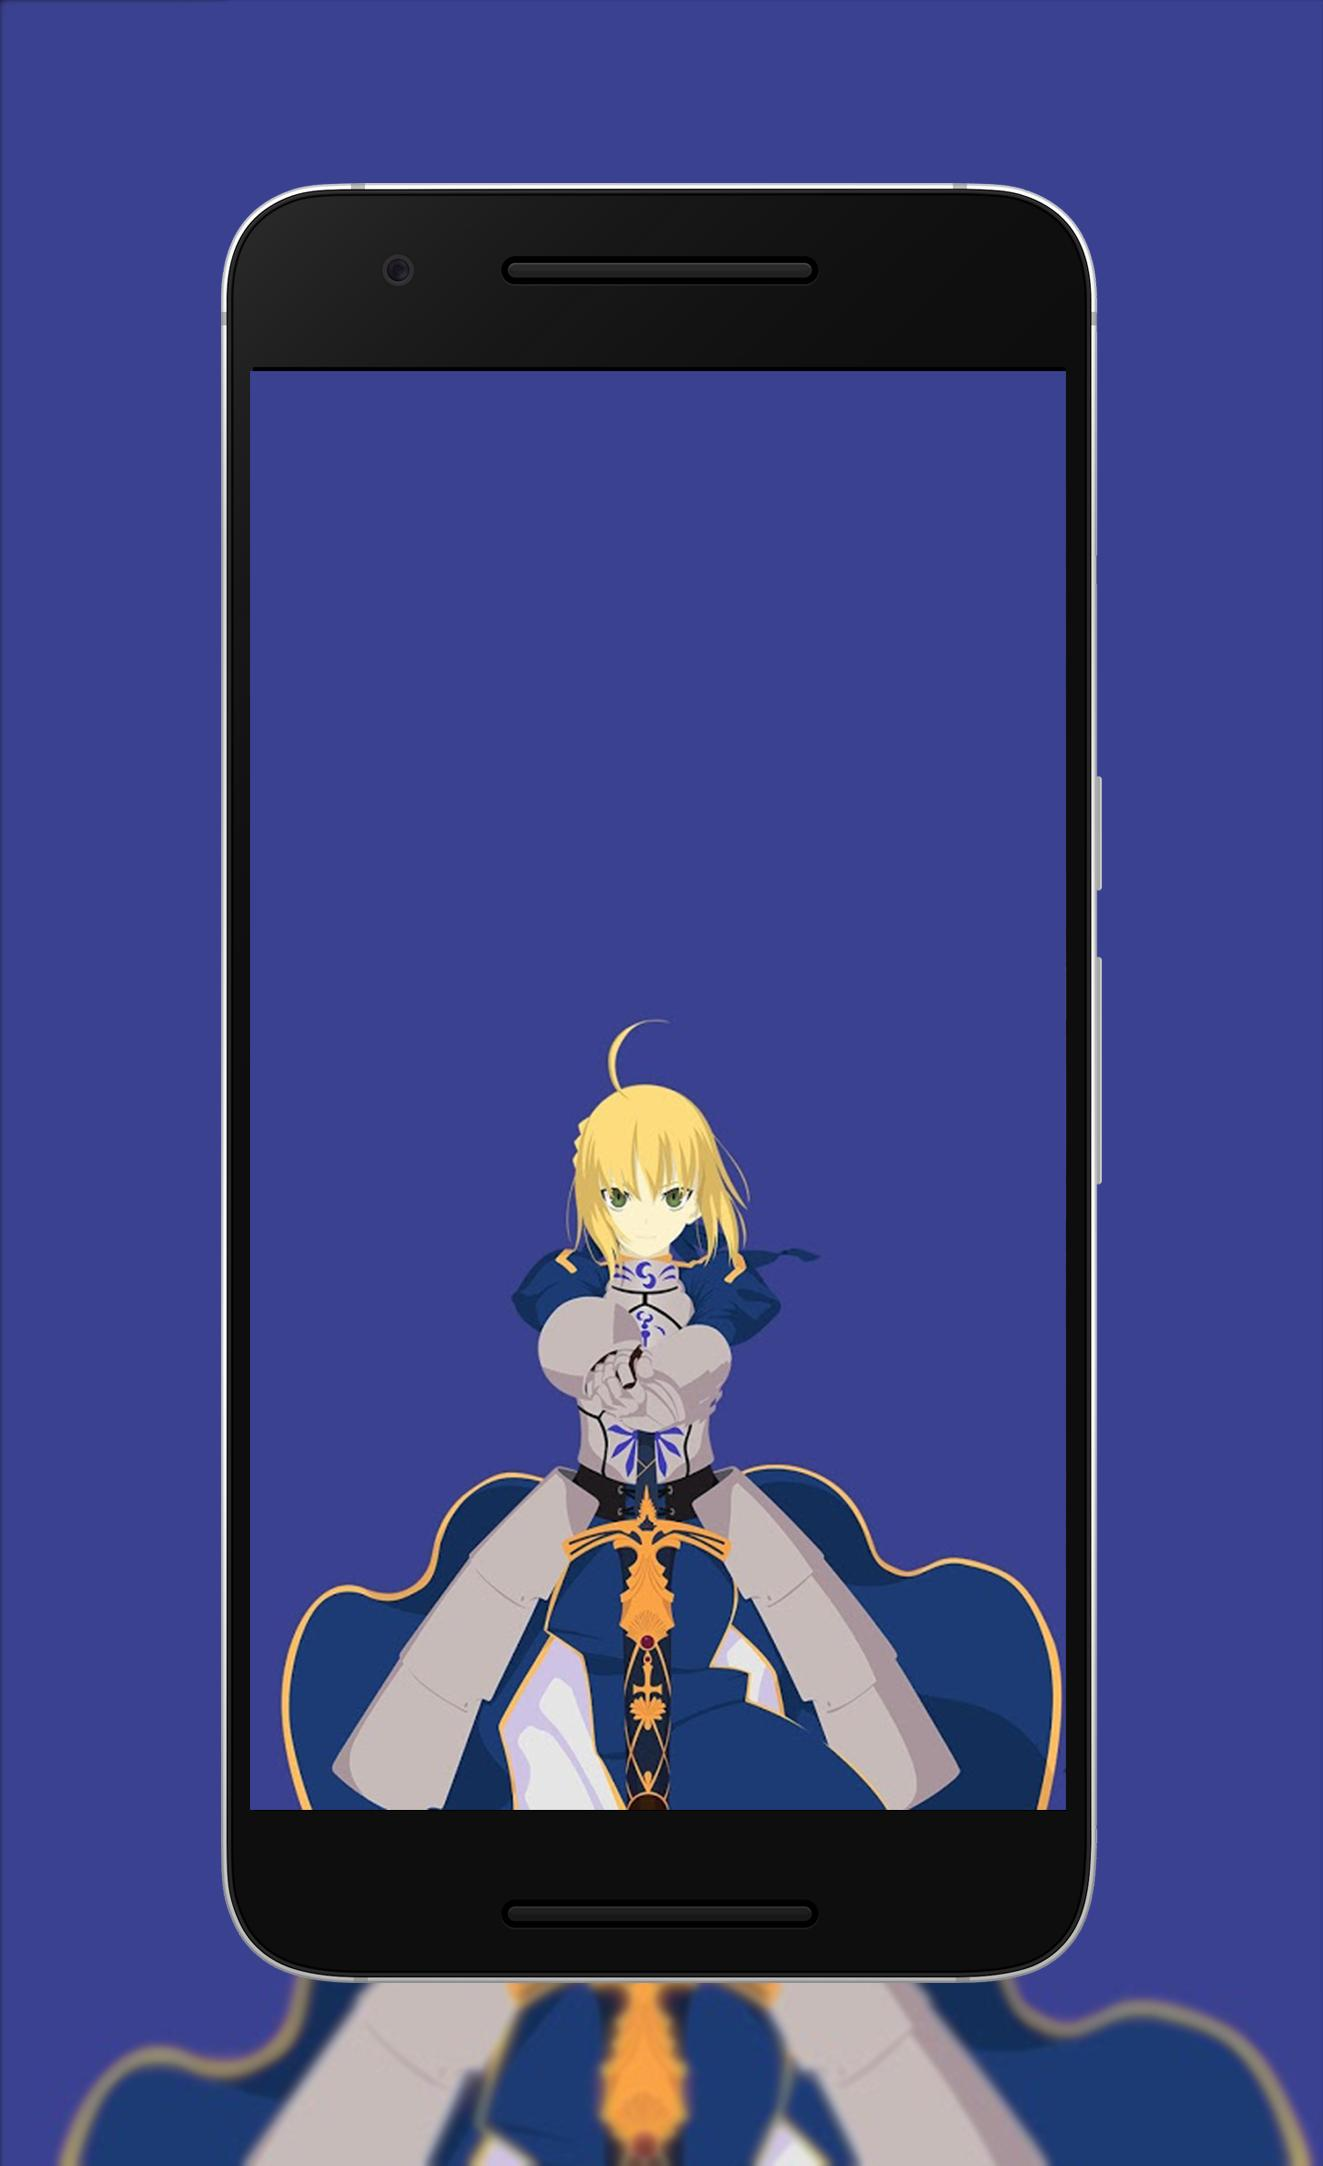 Anime Minimalist Wallpaper For Android Apk Download